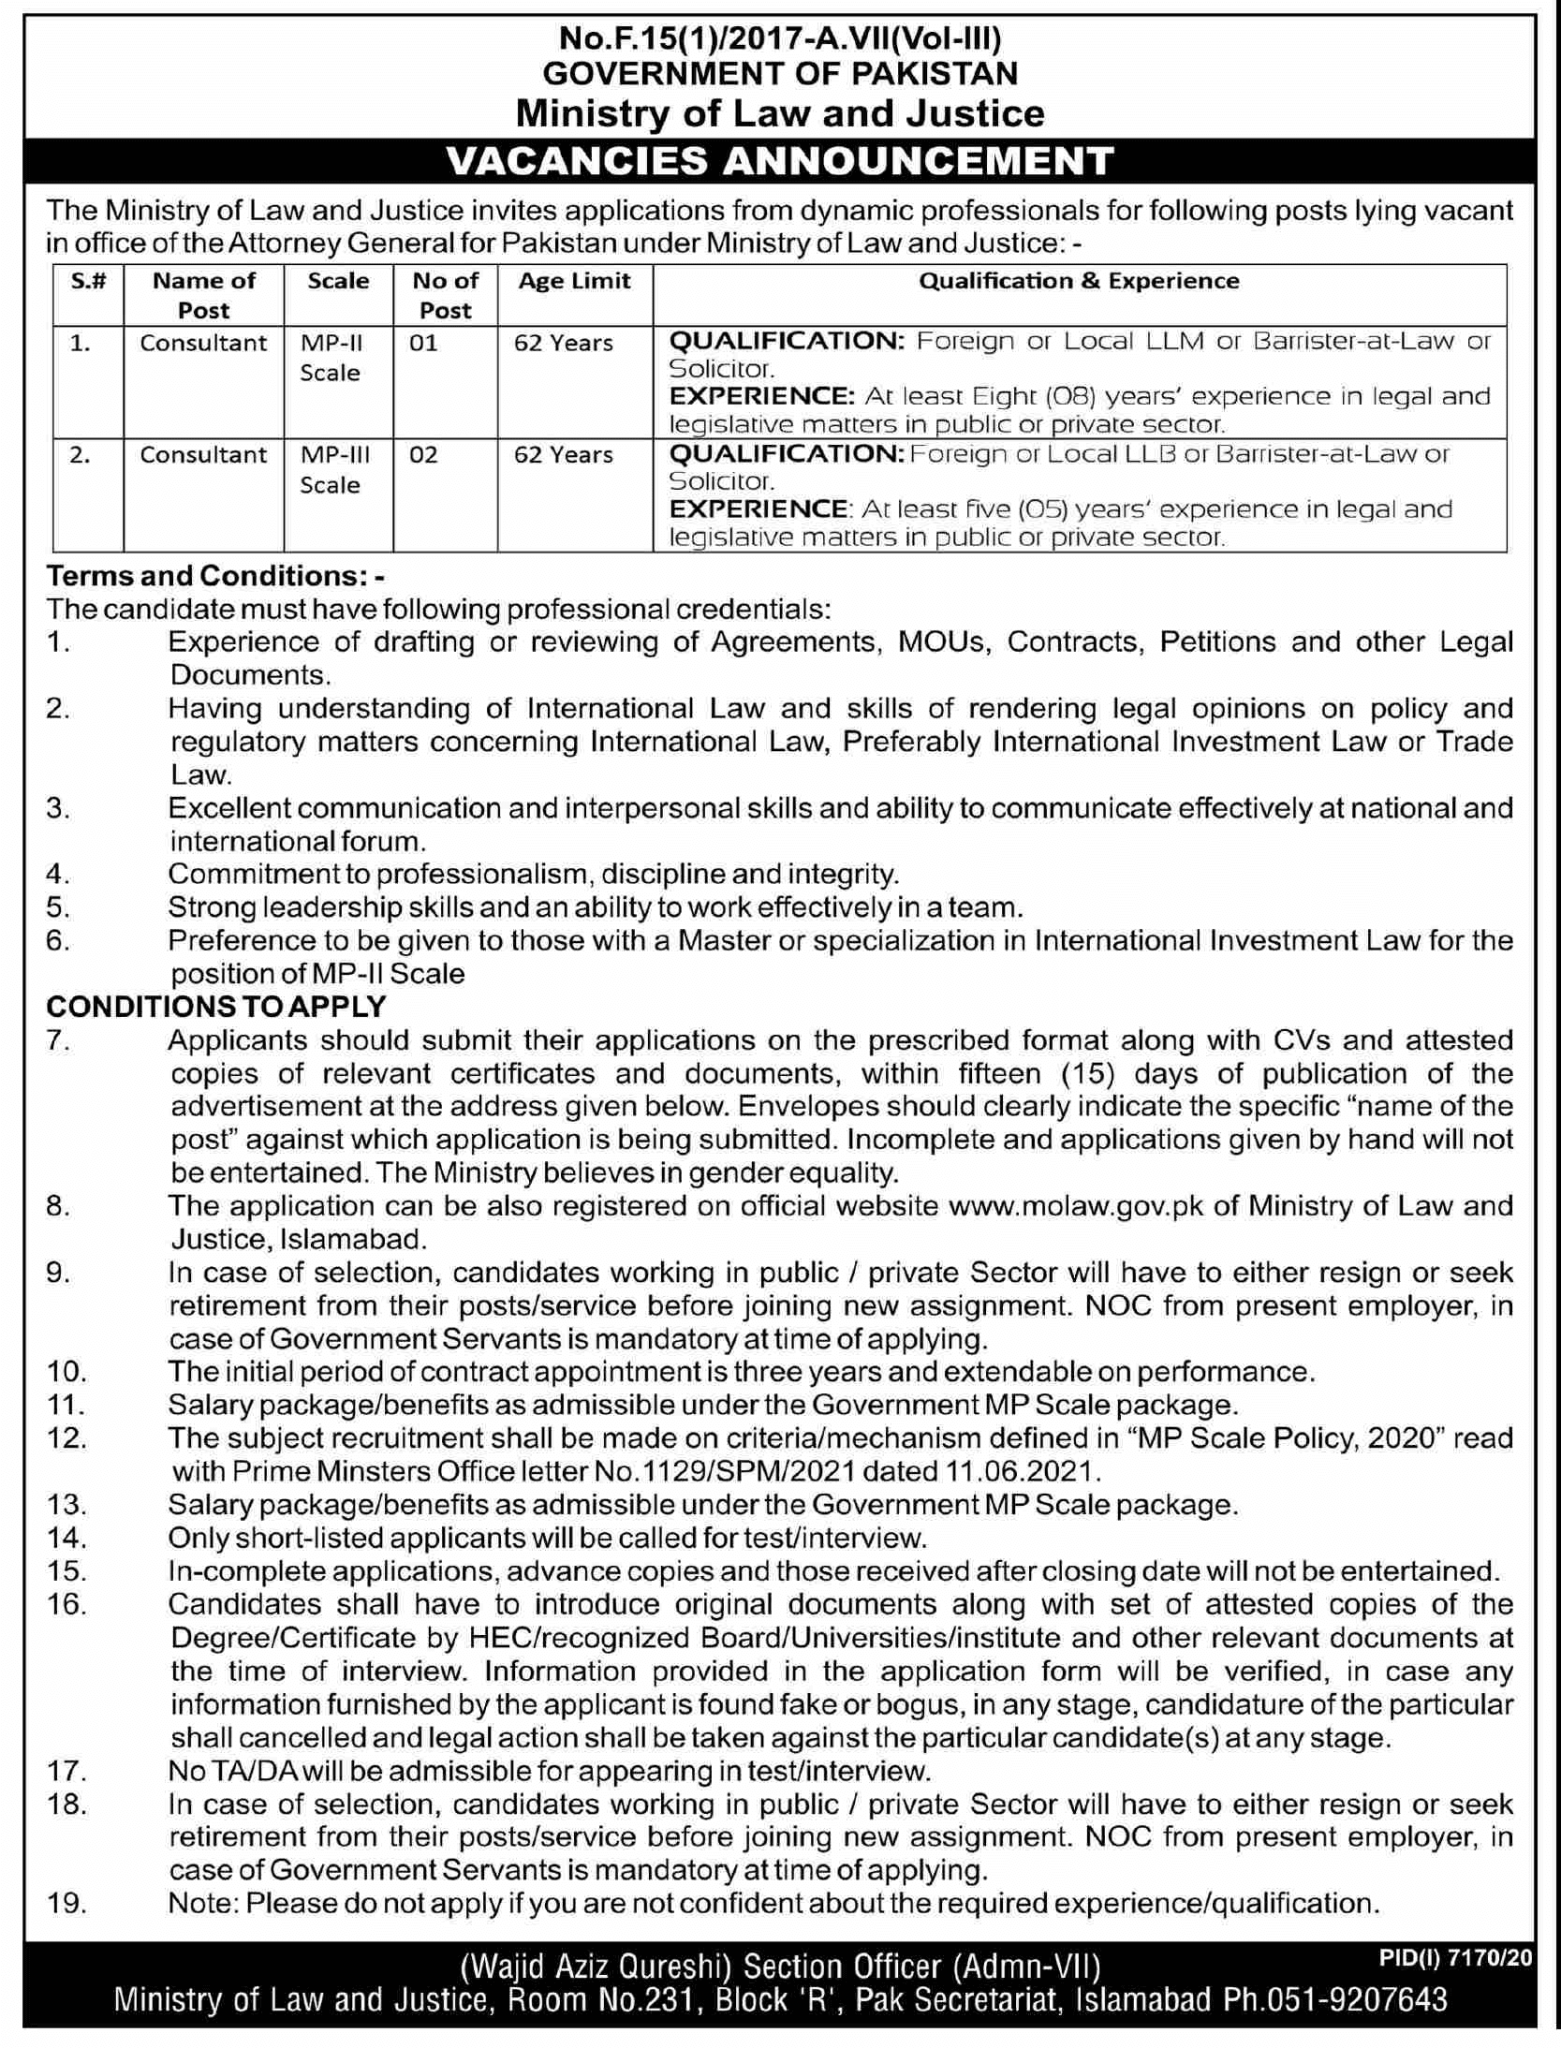 Ministry of Law and Justice Jobs 2021 Apply Online